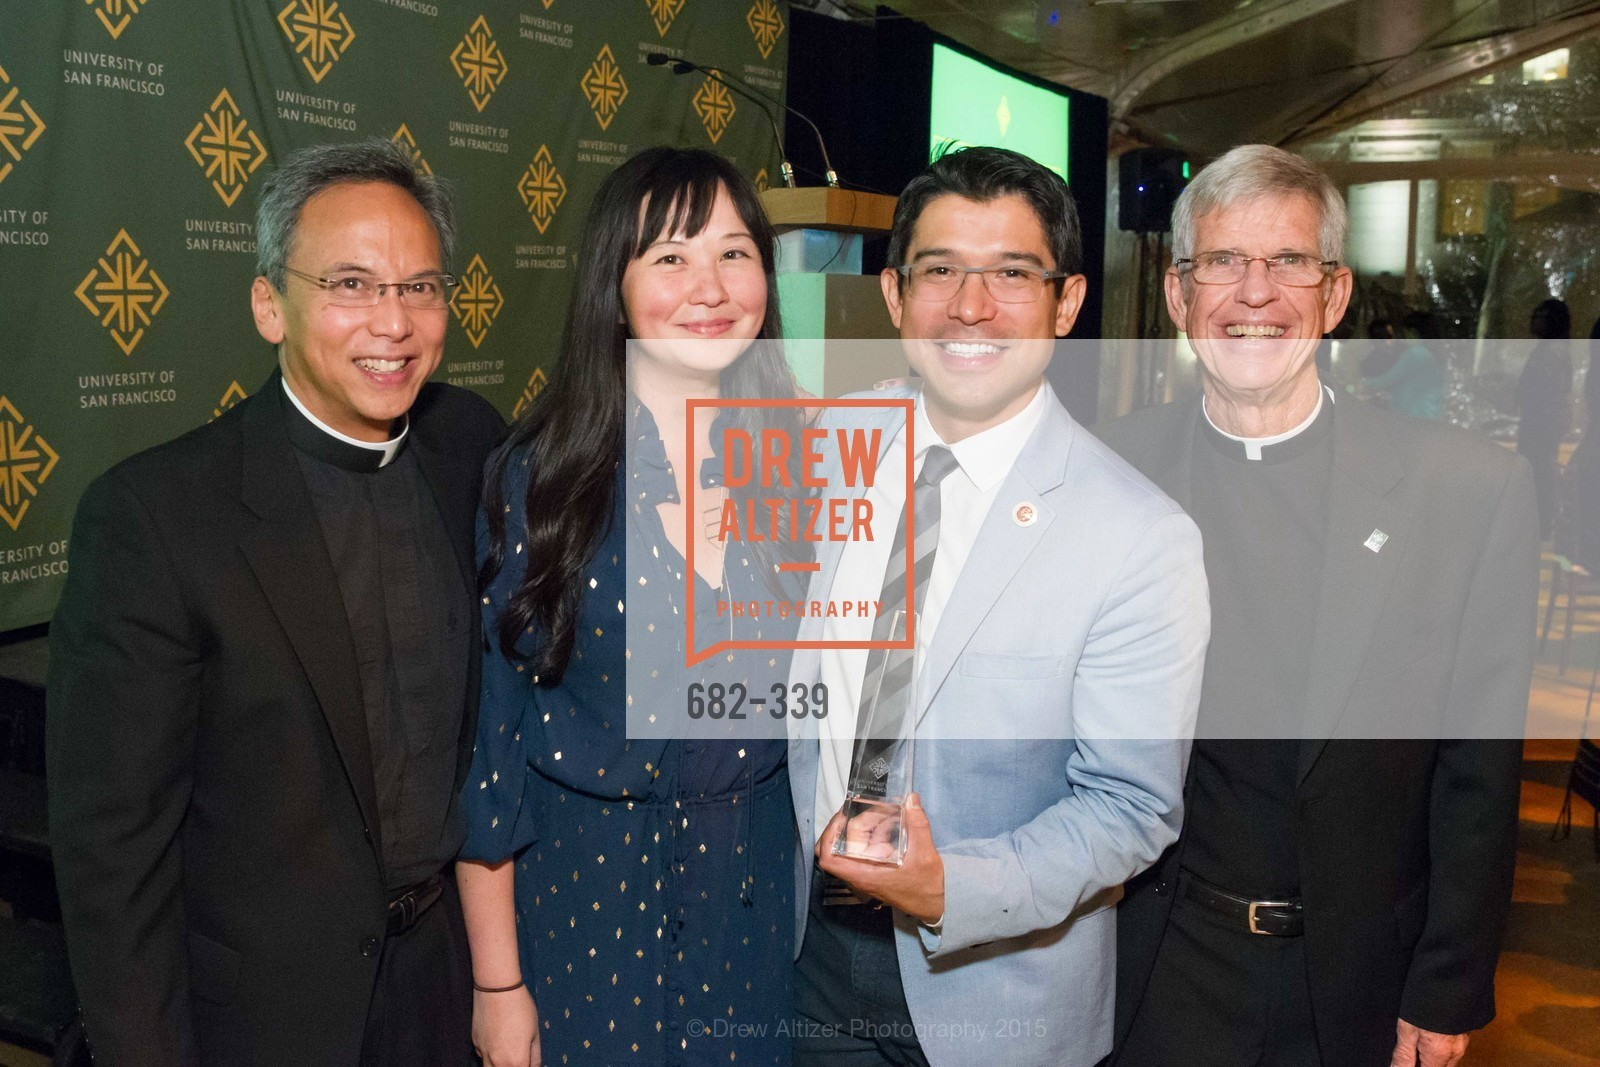 Sonny Manuel, Jen Zipp, Carlos Menchaca, Stephen Privett, University of San Francisco Alumni Awards Gala 2015, University of San Francisco, October 2nd, 2015,Drew Altizer, Drew Altizer Photography, full-service event agency, private events, San Francisco photographer, photographer California